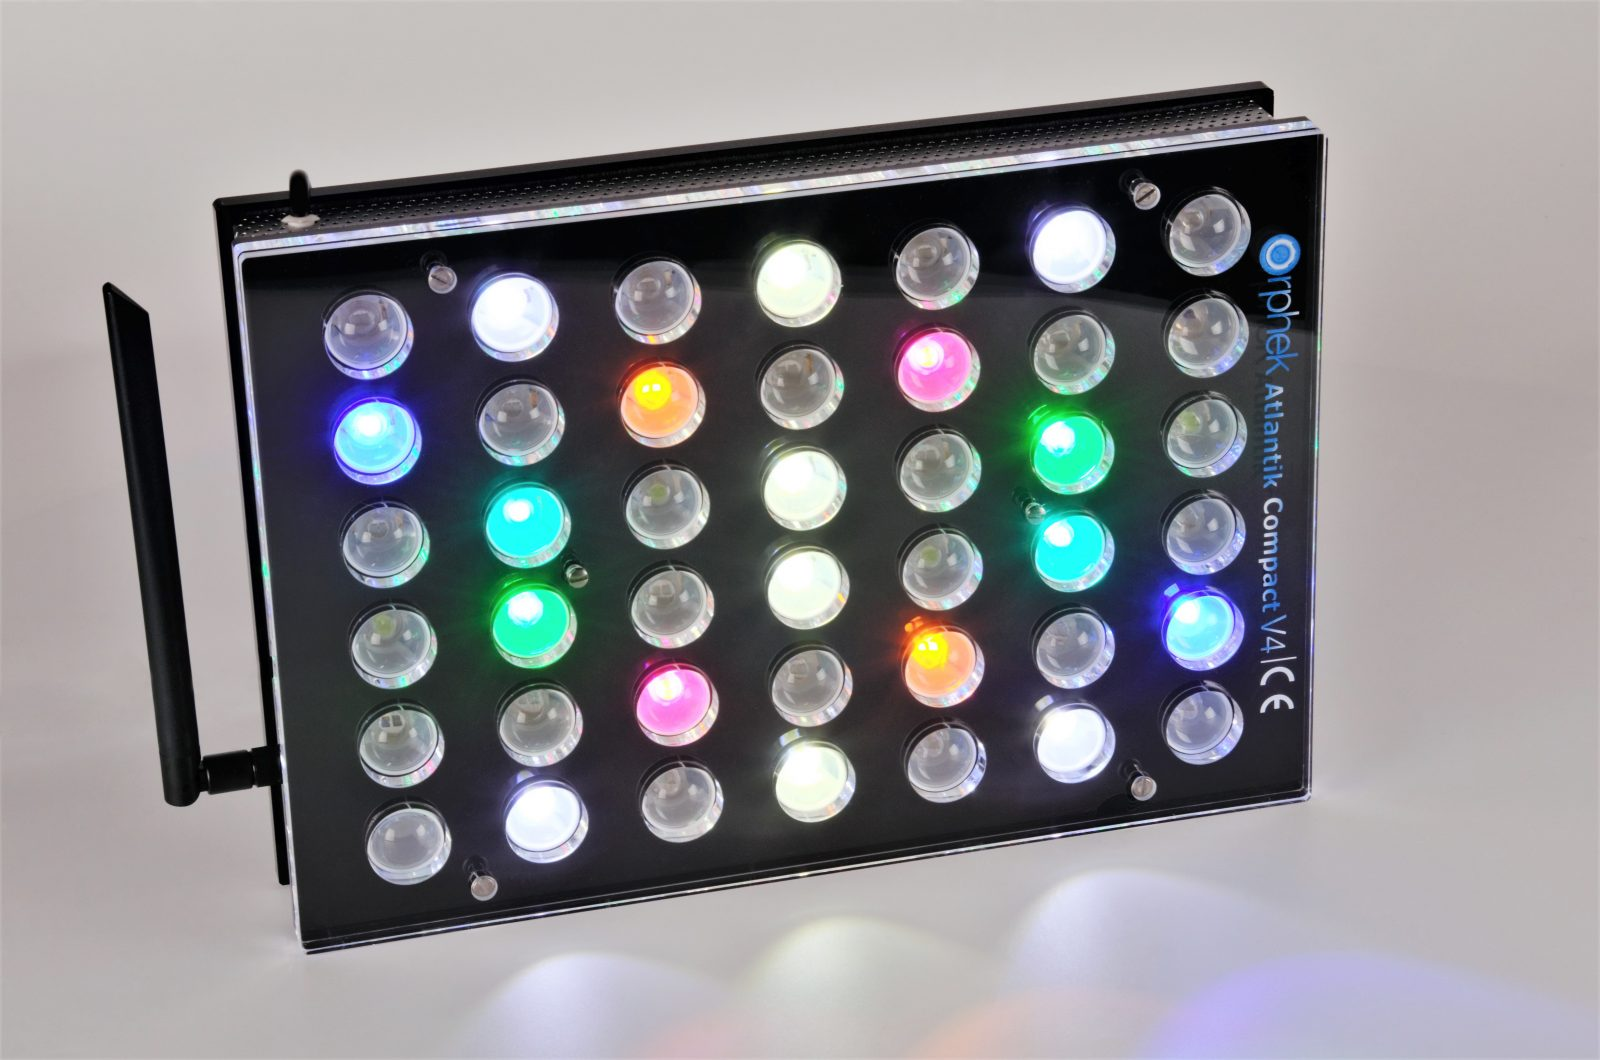 Orphek-Aquarium-LED-Lighting-Atlantik-کمپیکٹ - V4-روشنی -لینلین 1 + 4